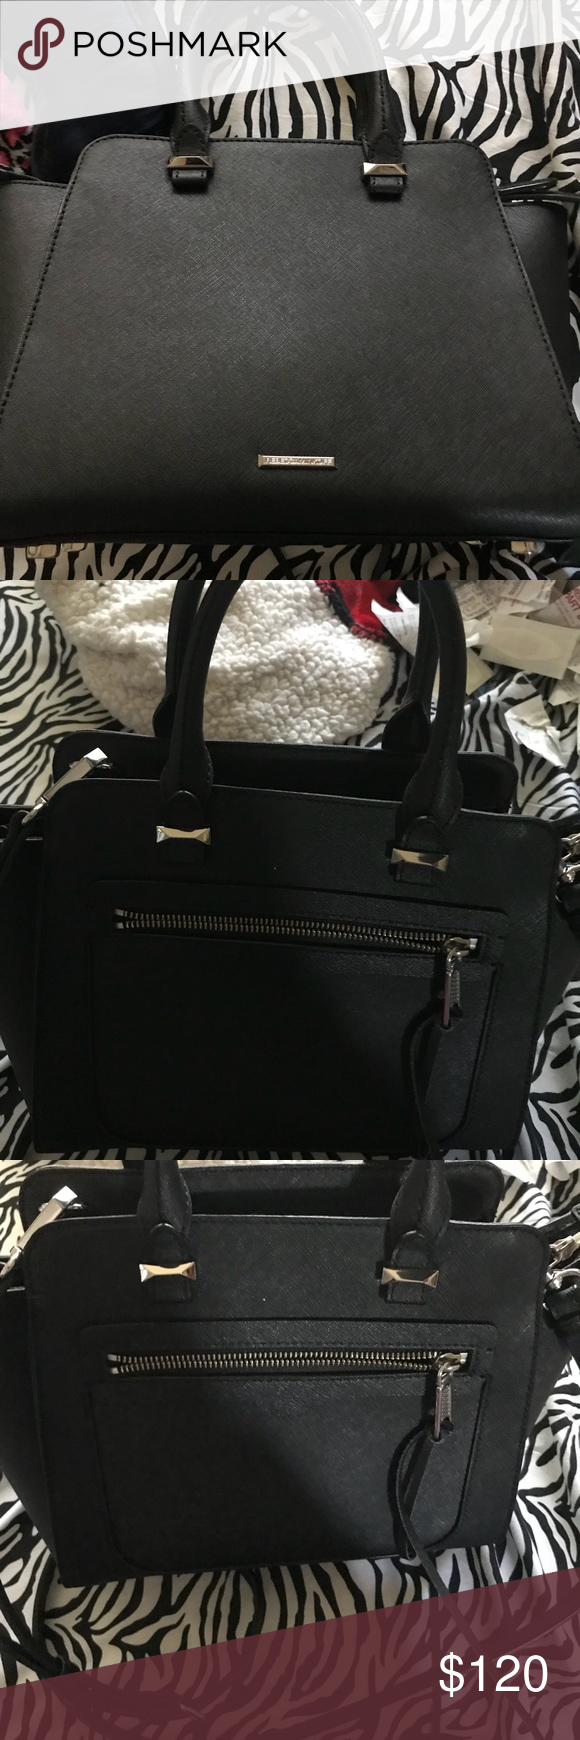 Rebecca Minkoff purse Lightly used. Only stain is inside the bag. And it is pictured in the photos. Make me an offer Rebecca Minkoff Bags Crossbody Bags